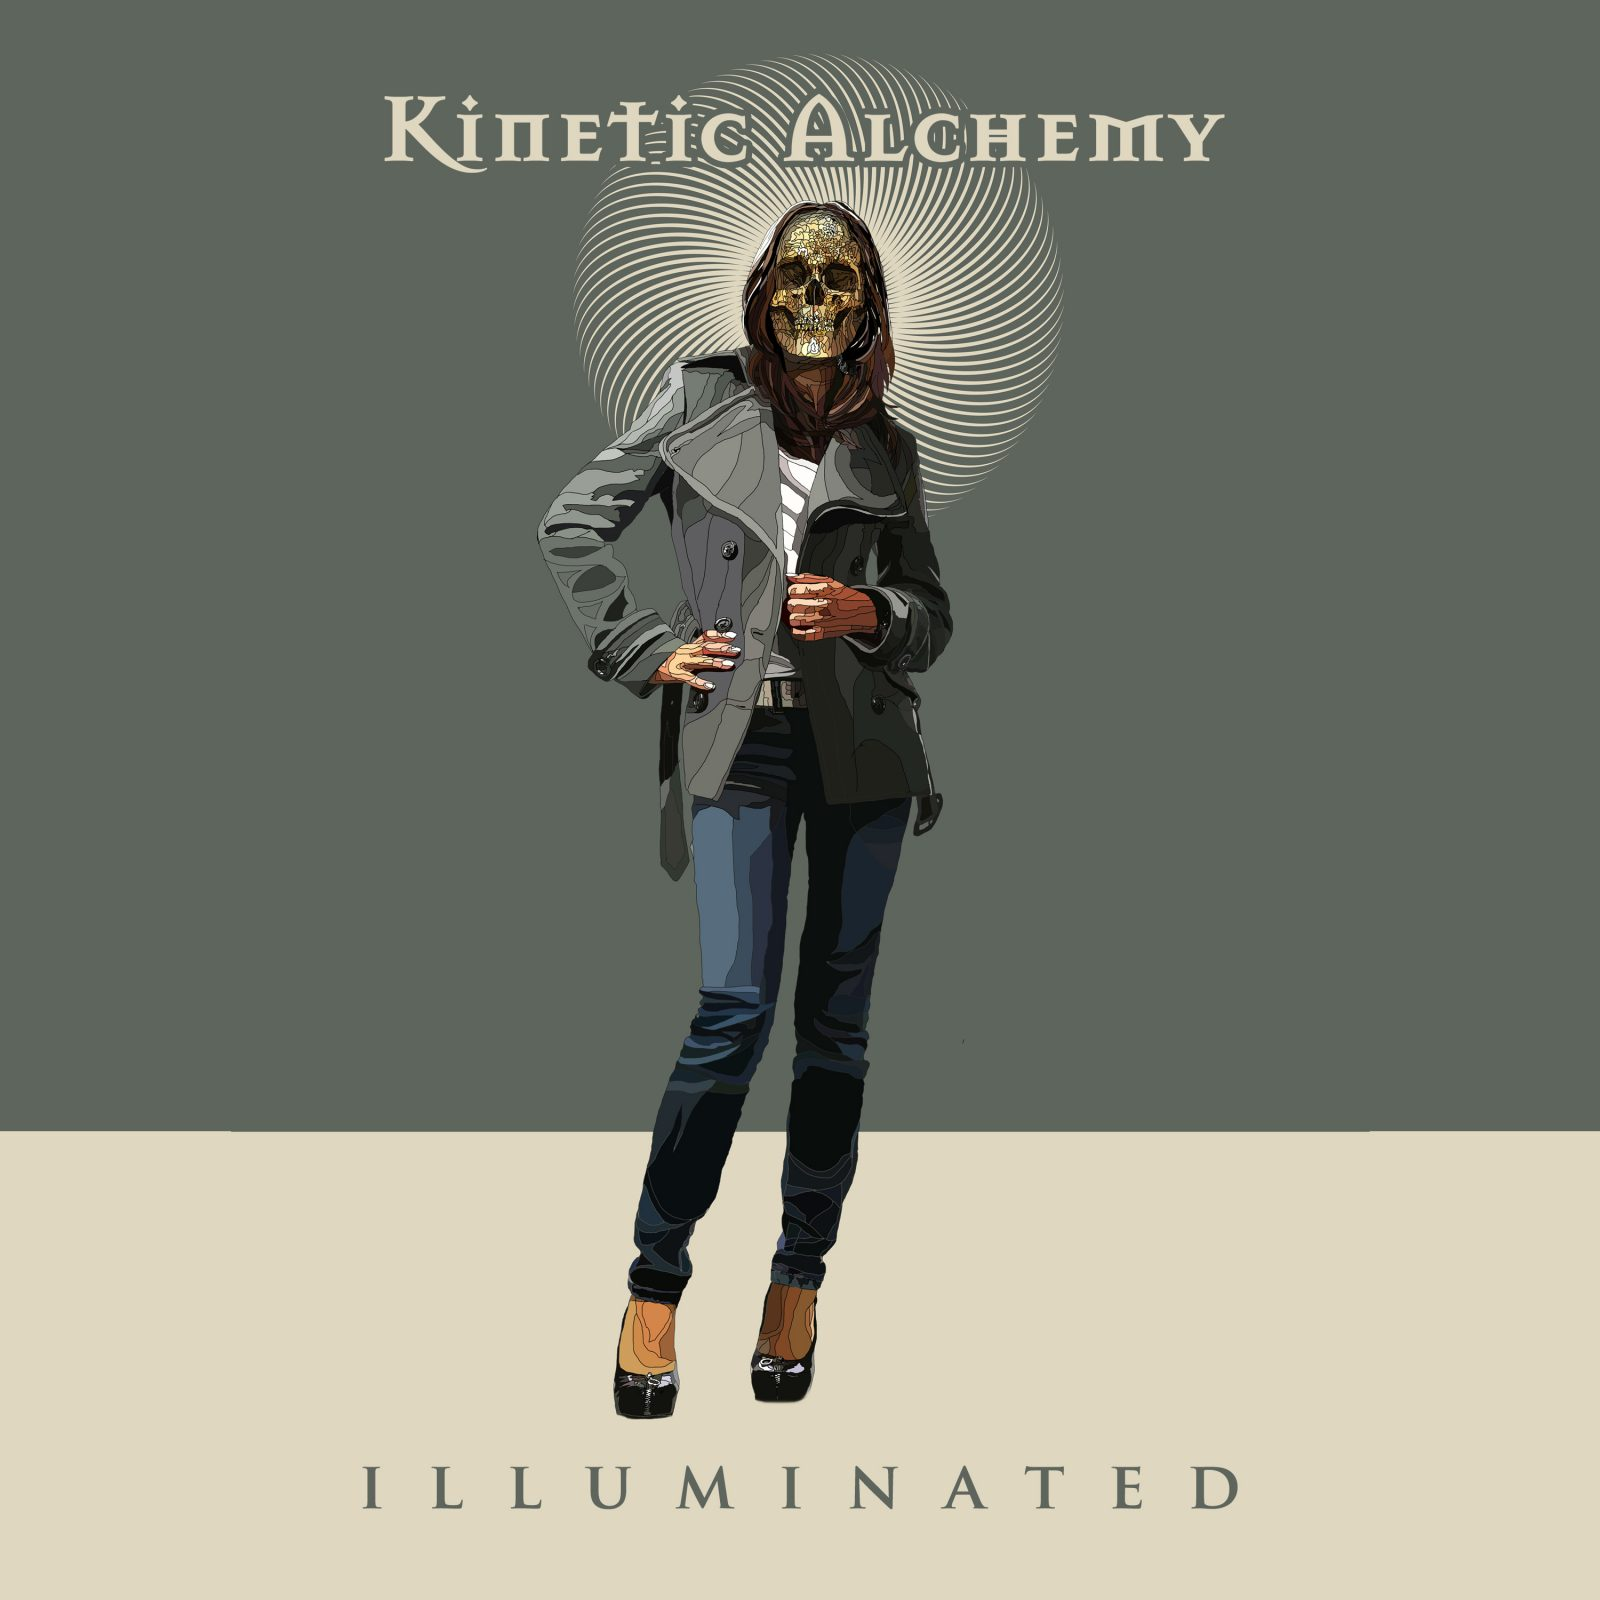 Illuminated music track by Kinetic Alchemy